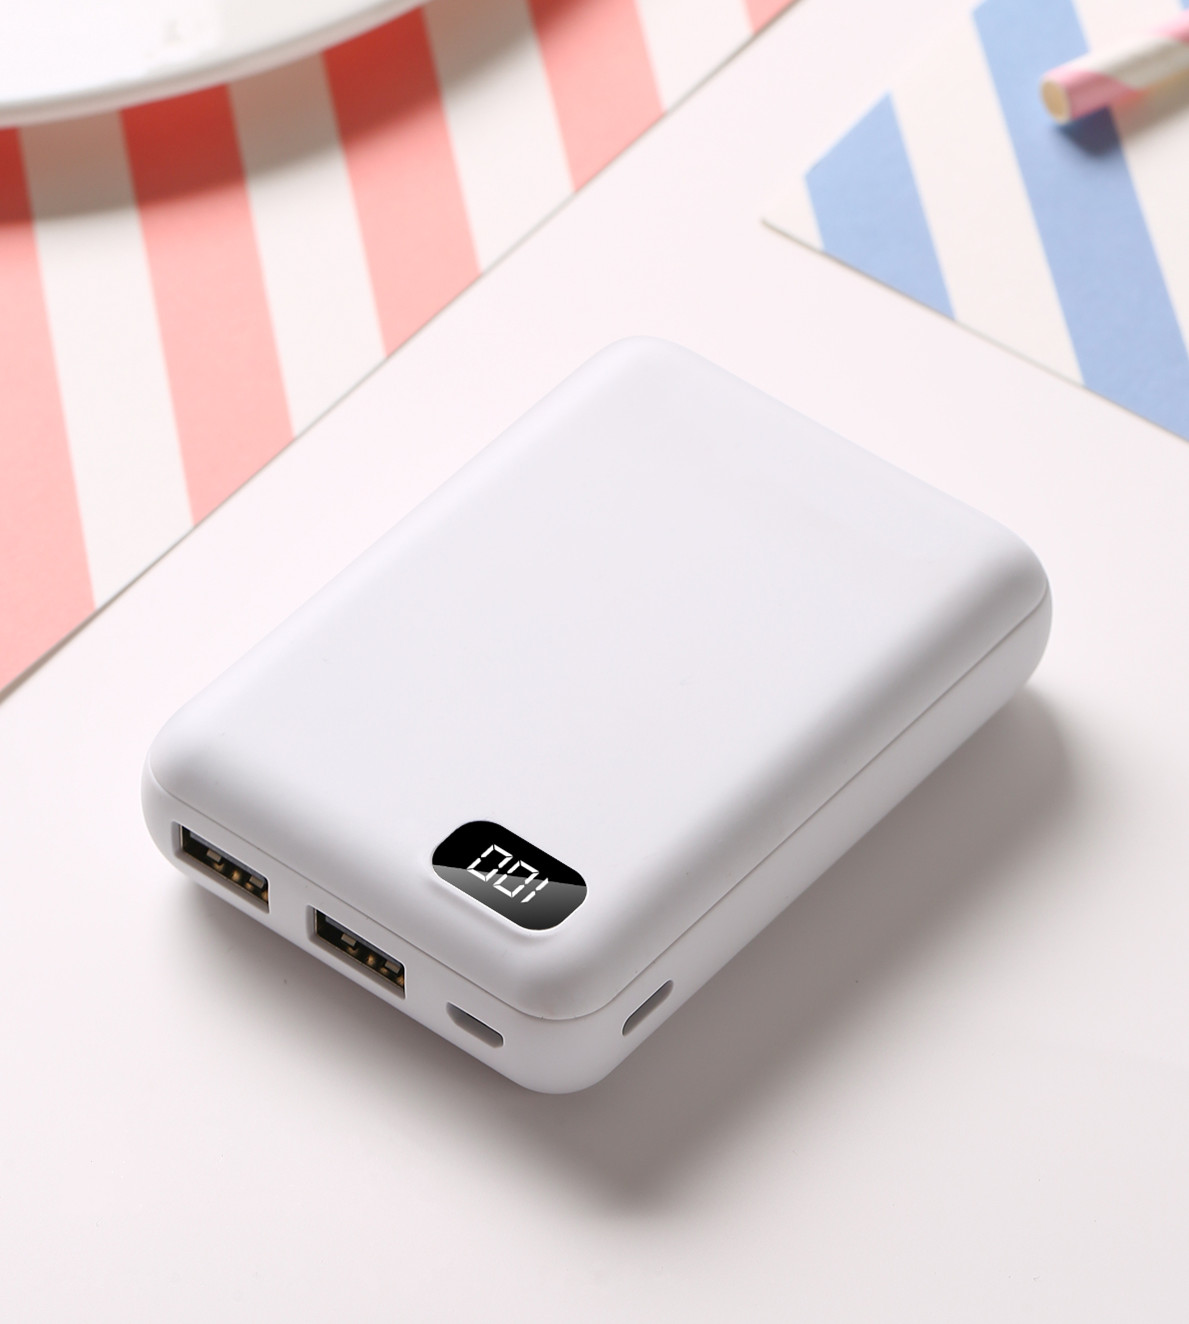 2019 Mini Portable Battery Power Bank 10000mAh Emergency Battery Power Bank for Home LED lights type-c power bank for Phone фото